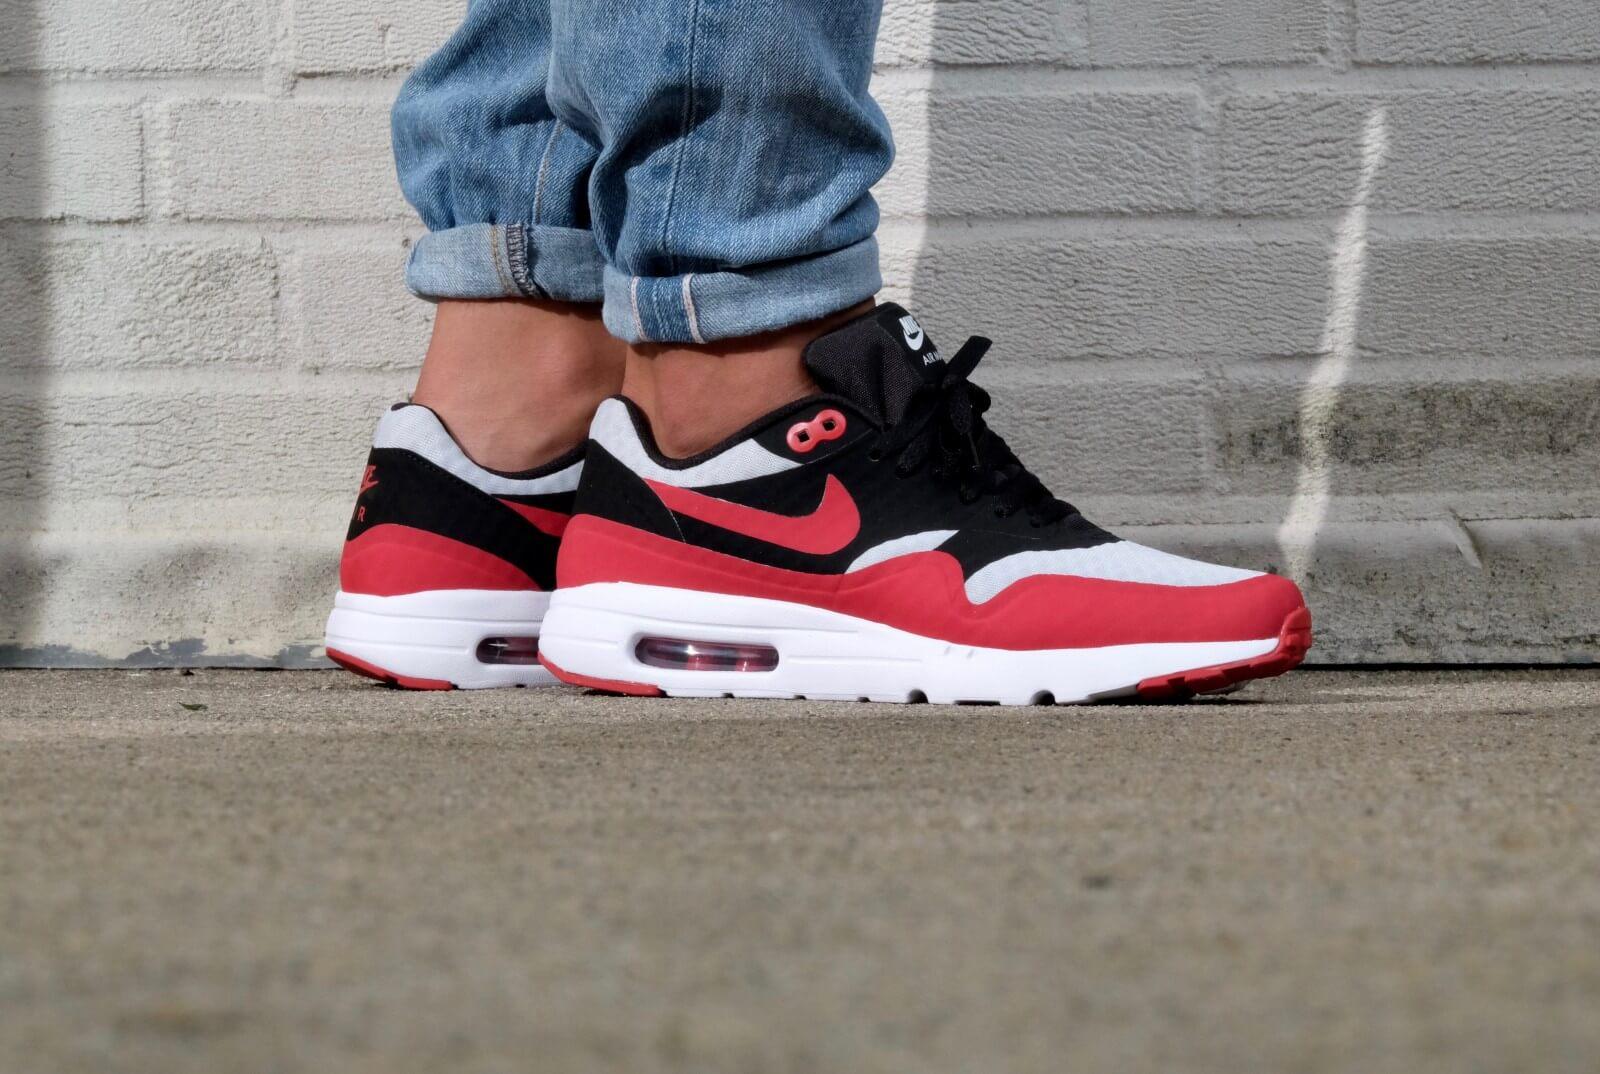 Nike Air Max 1 Ultra essential Pure platinum Gym Red Black White 819476 005